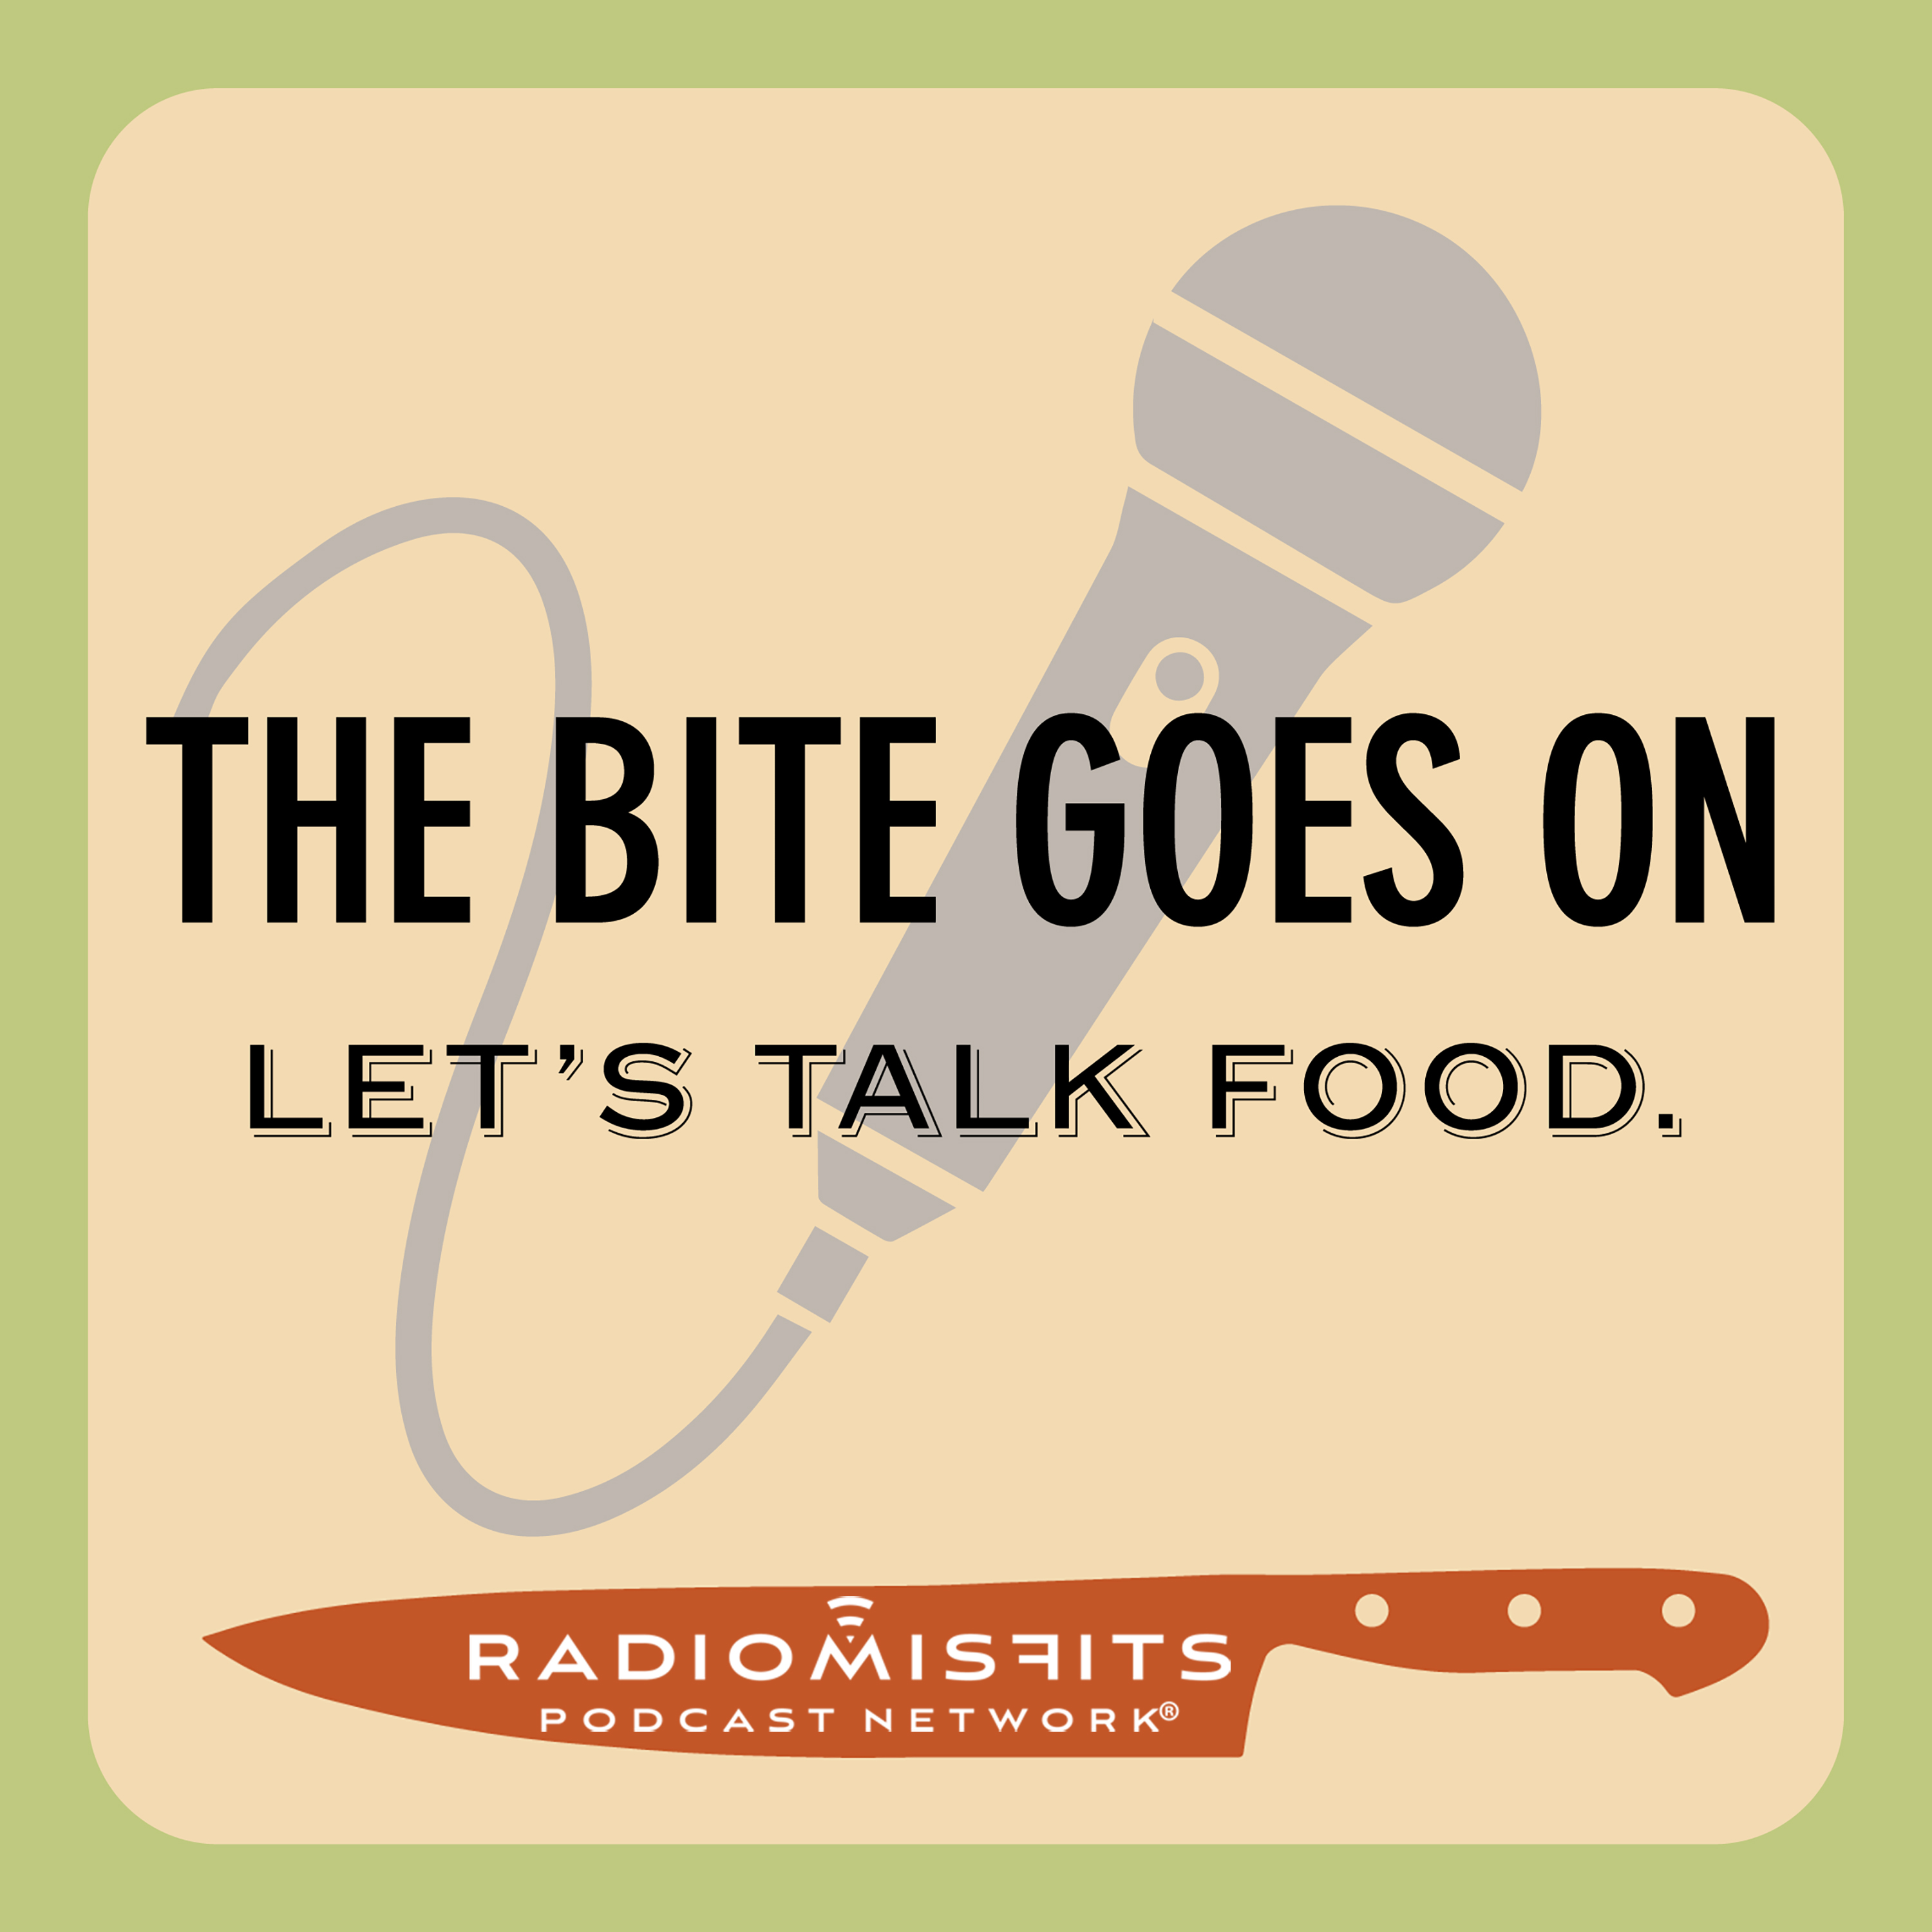 The Bite Goes On – Radio Misfits Podcast - Listen, Reviews, Charts